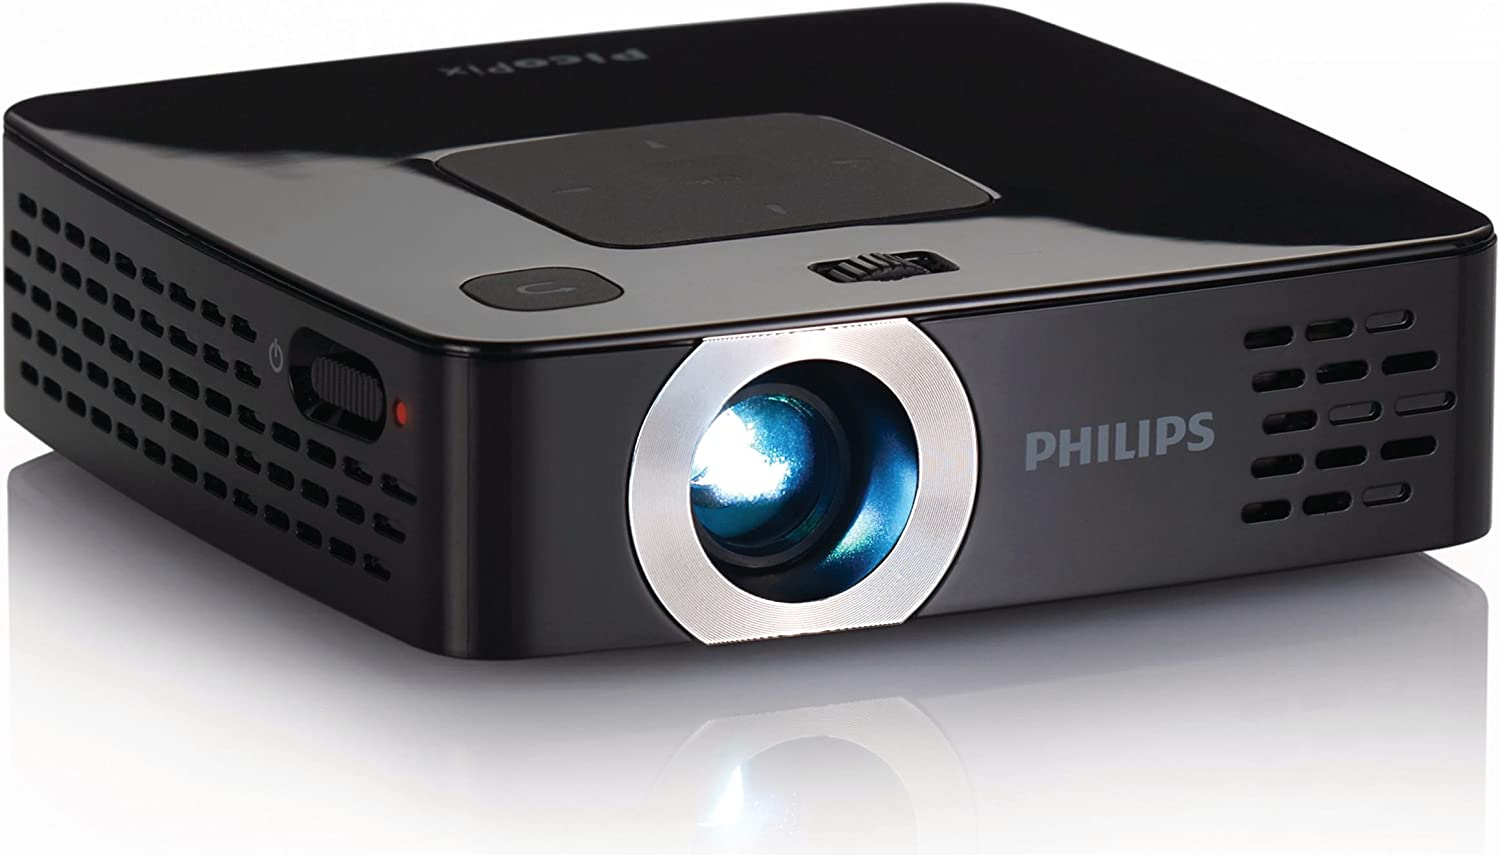 Amazon.com: Philips ppx2480 Proyector de LED, lúmenes ANSI ...